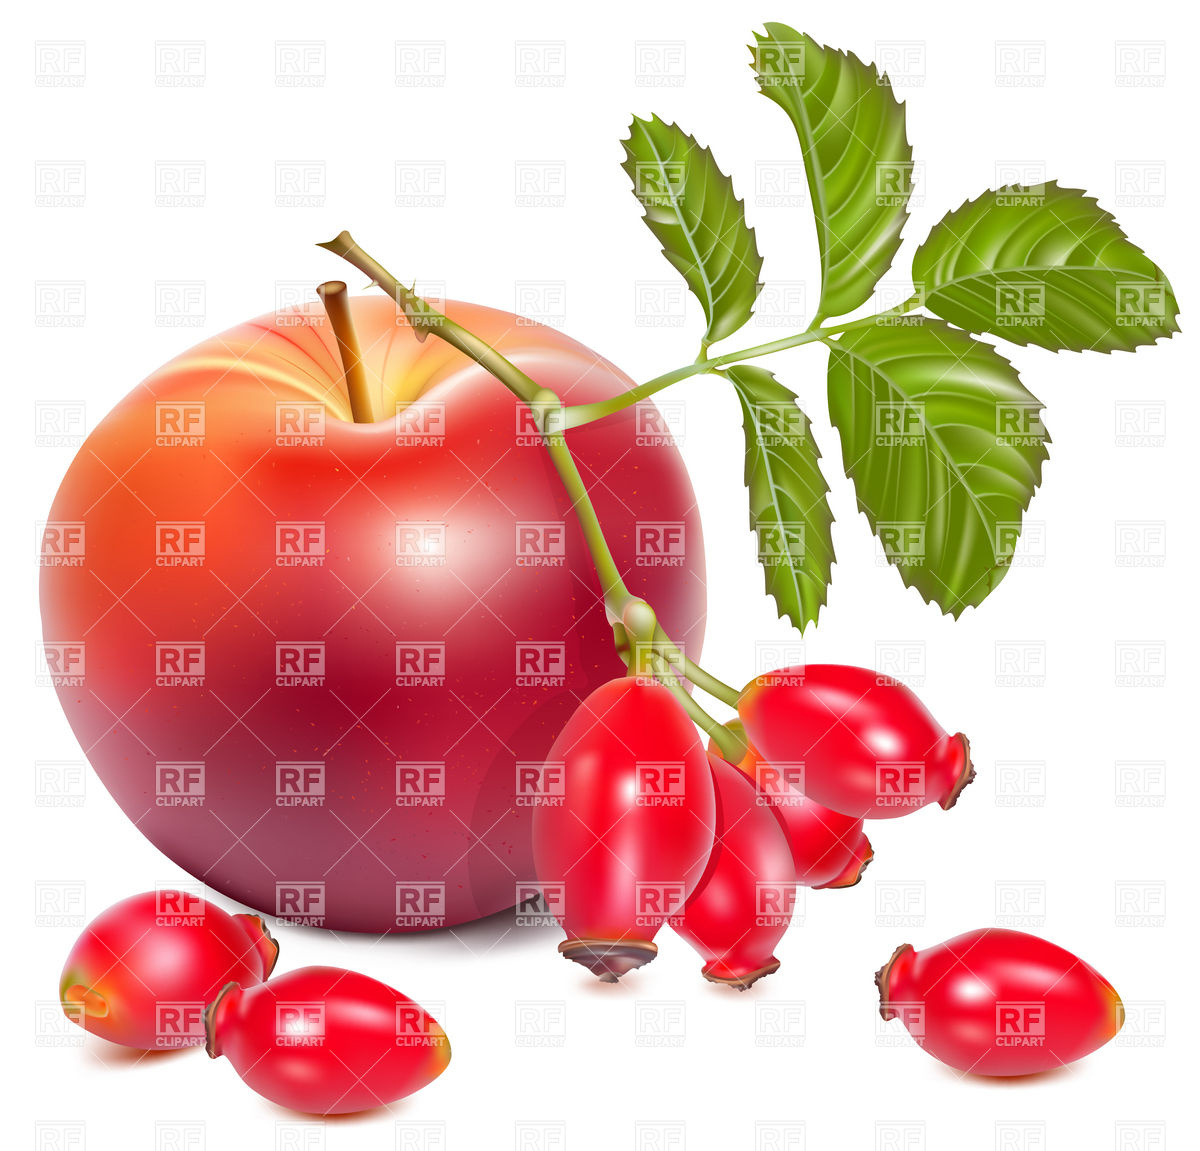 Red Apples and Rose Hips (dog rose hips) Vector Image #4926.